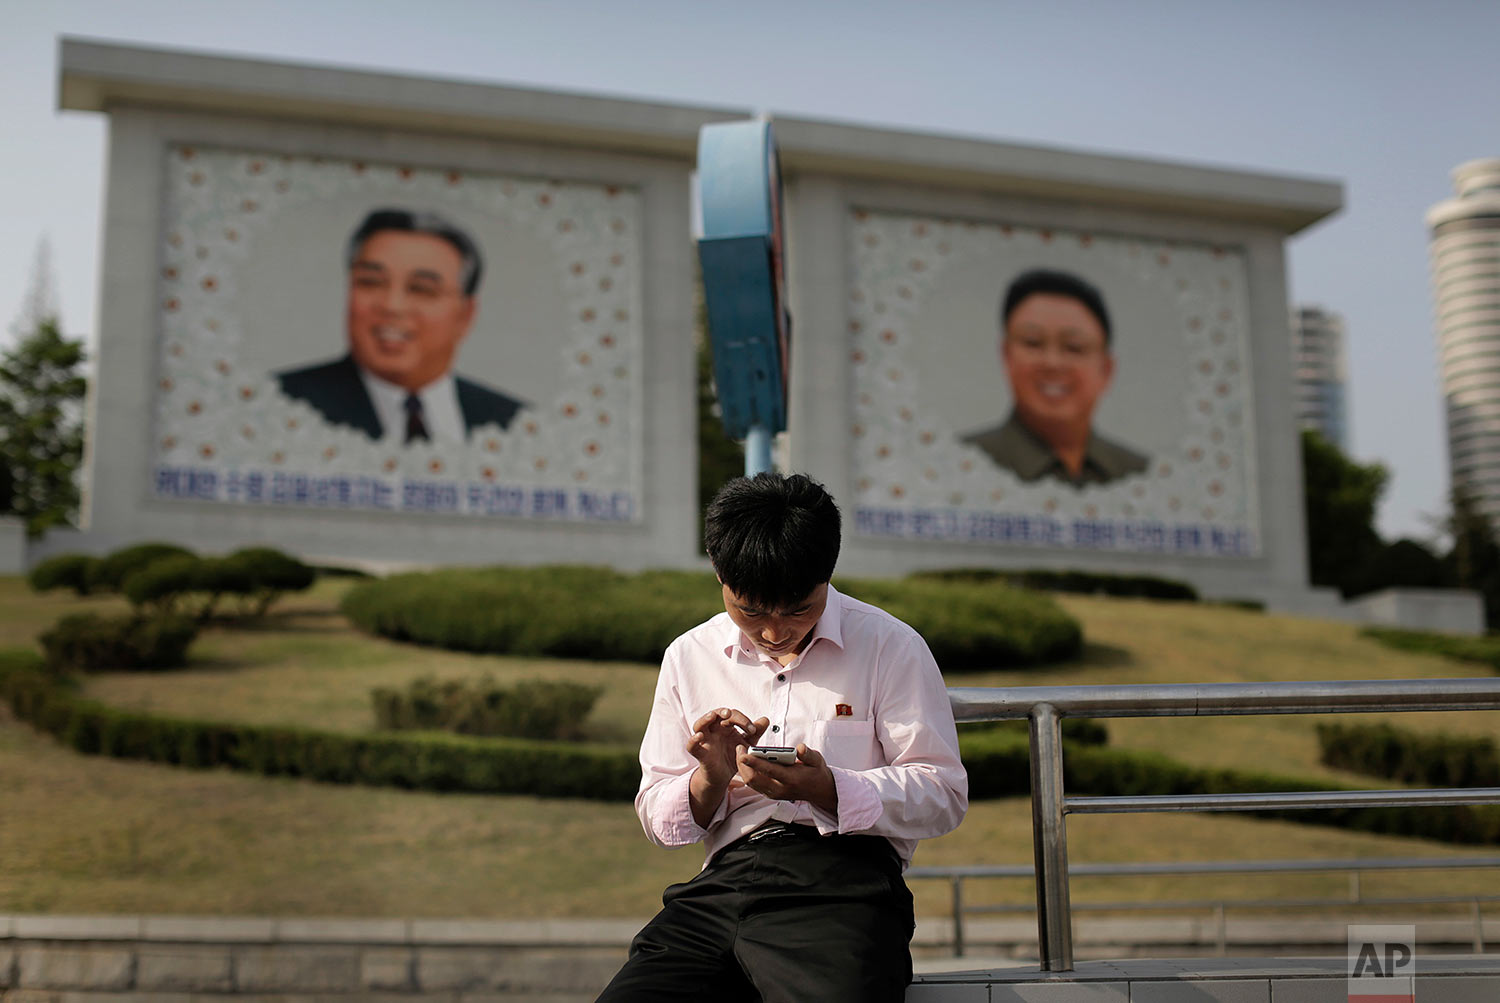 A man uses his smartphone in front of portraits of the late North Korean leaders Kim Il Sung, left, and Kim Jong Il in Pyongyang, North Korea, on May 5, 2015. North Koreans have gained greater access to media and devices like cellphones during Kim Jong Un's rule. (AP Photo/Wong Maye-E)